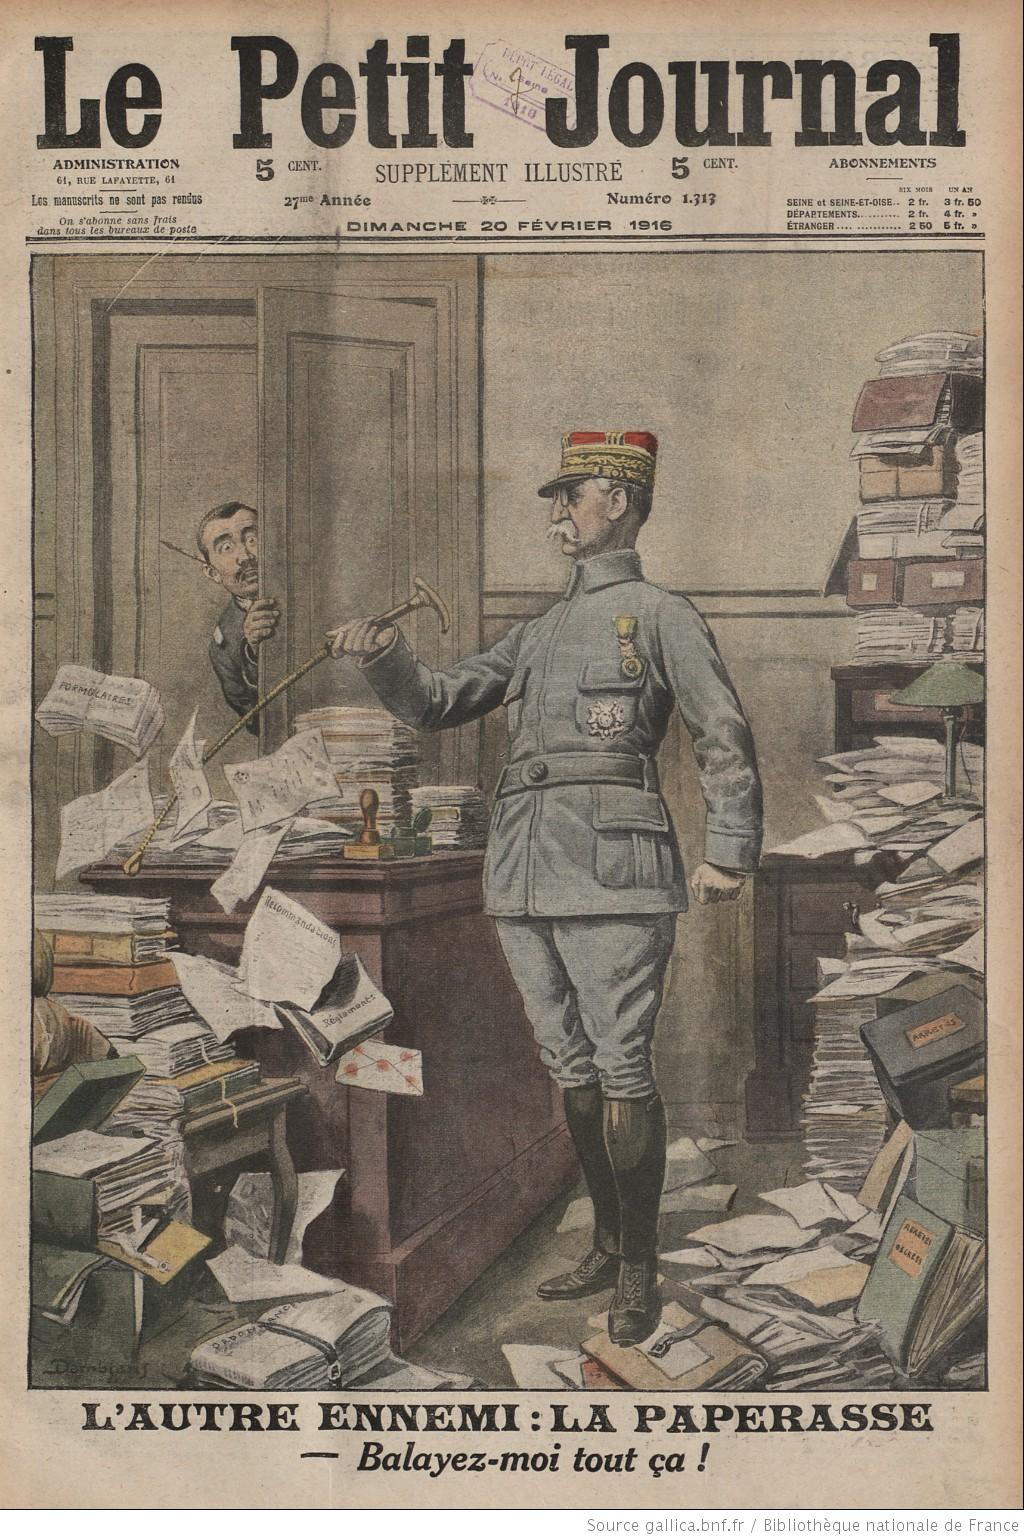 LPJ Illustre 1916-02-20 A.jpg